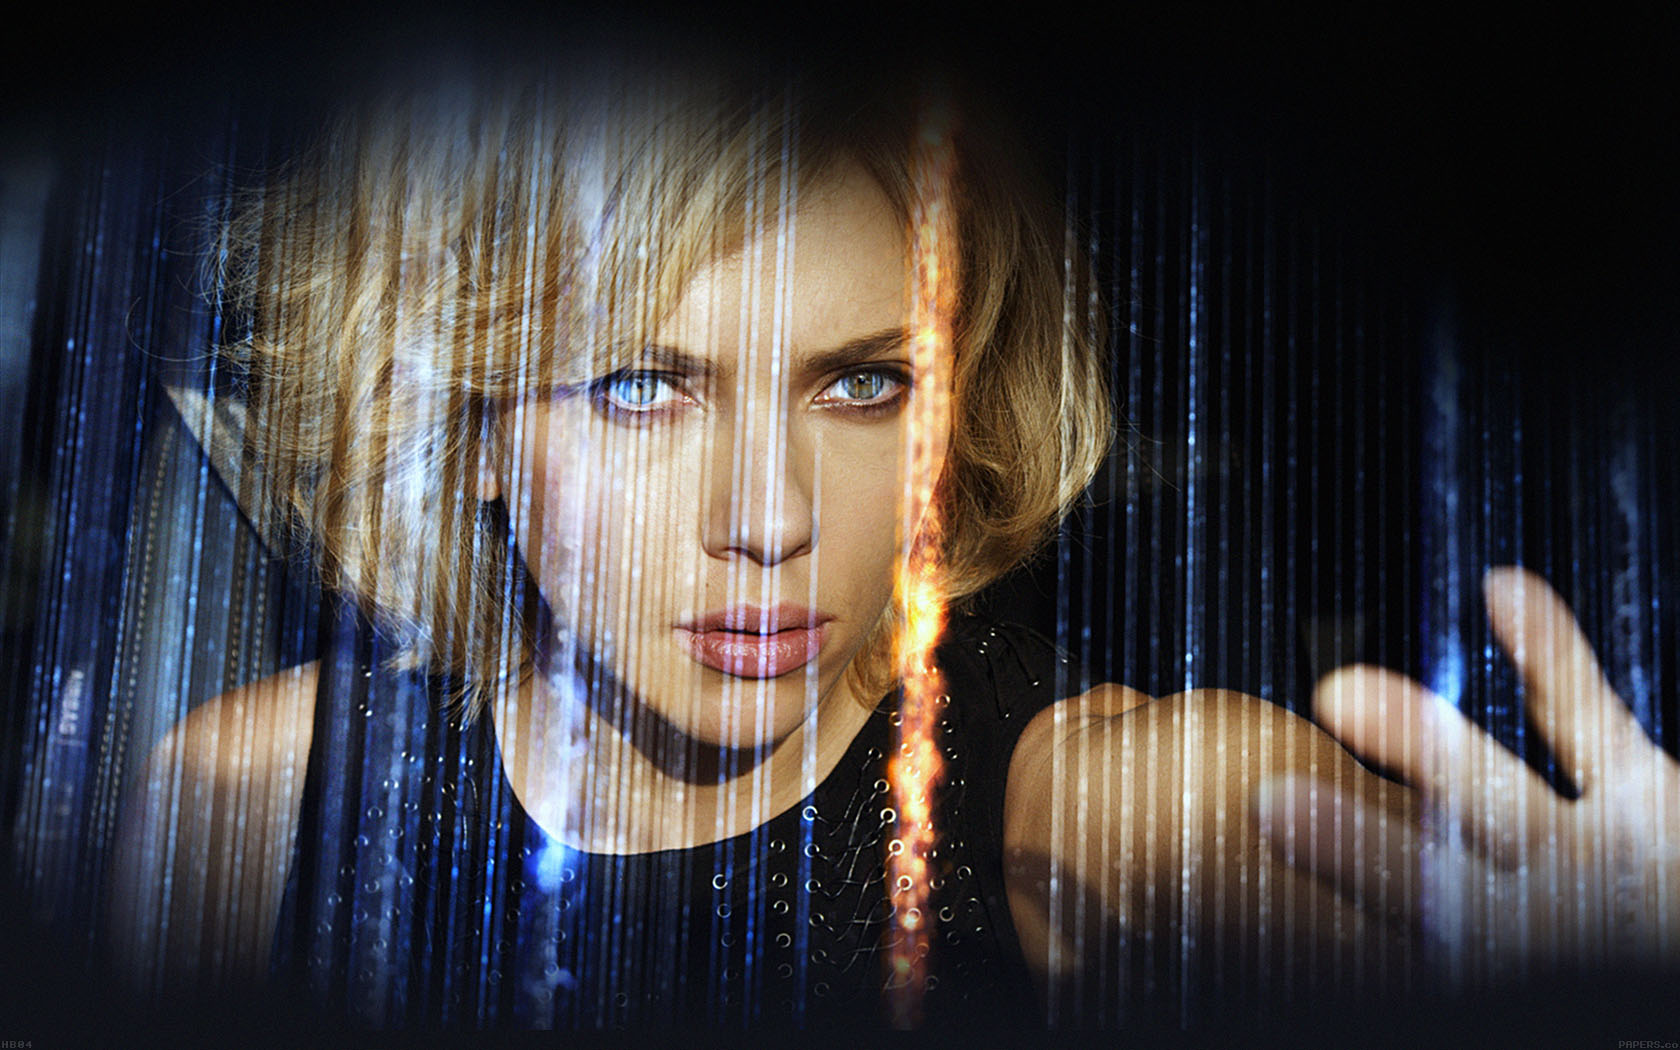 Fall Wallpaper For Iphone 7 Hb04 Wallpaper Lucy Film Scarlett Johansson Sexy Face